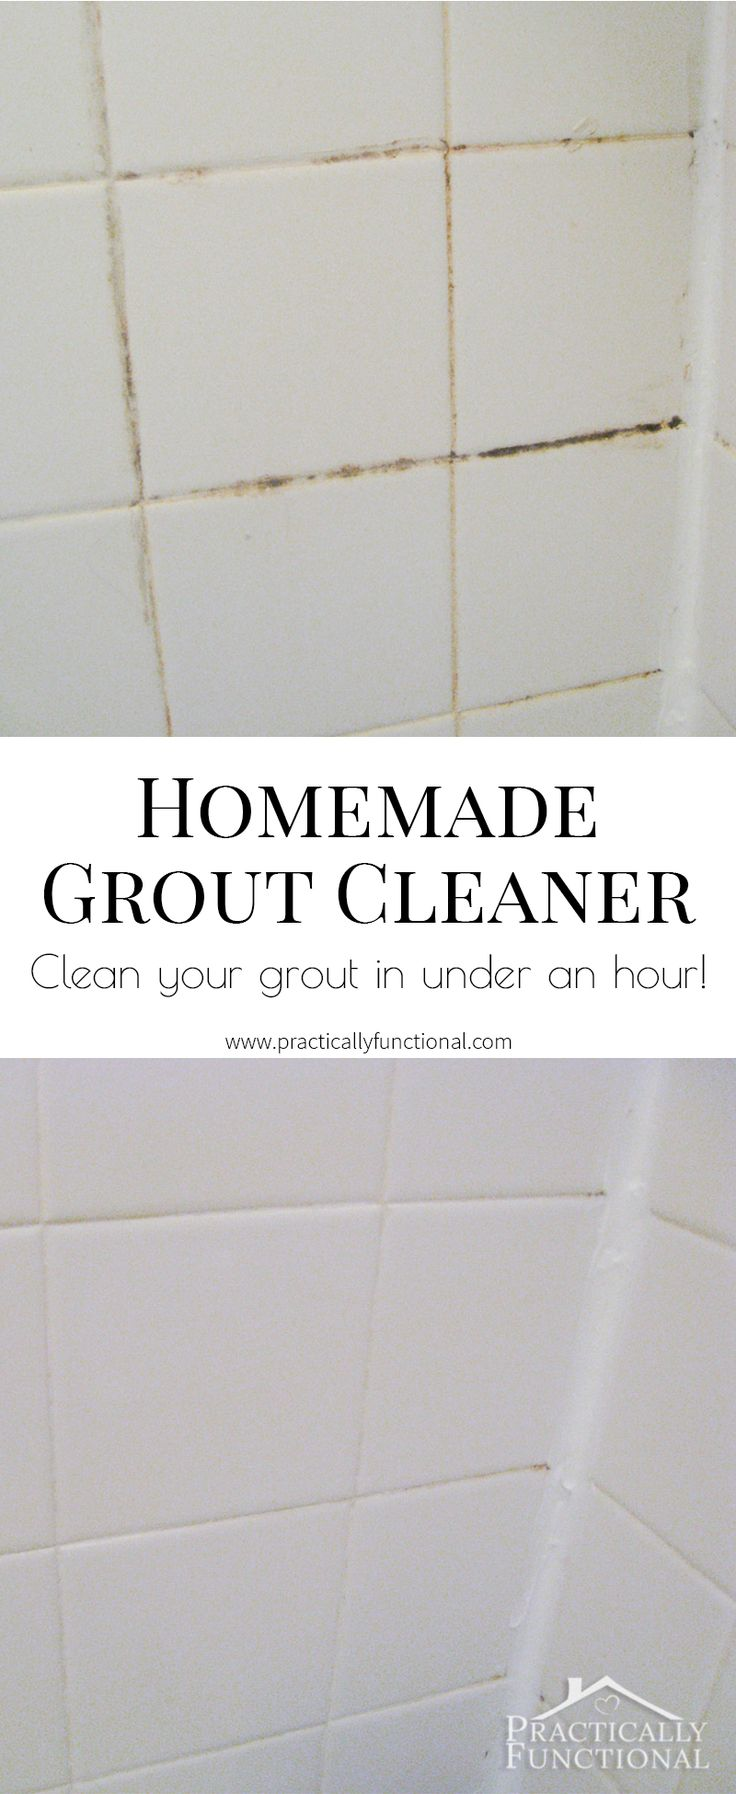 How to clean grout on bathroom floor tiles - How To Clean Grout With A Homemade Grout Cleaner